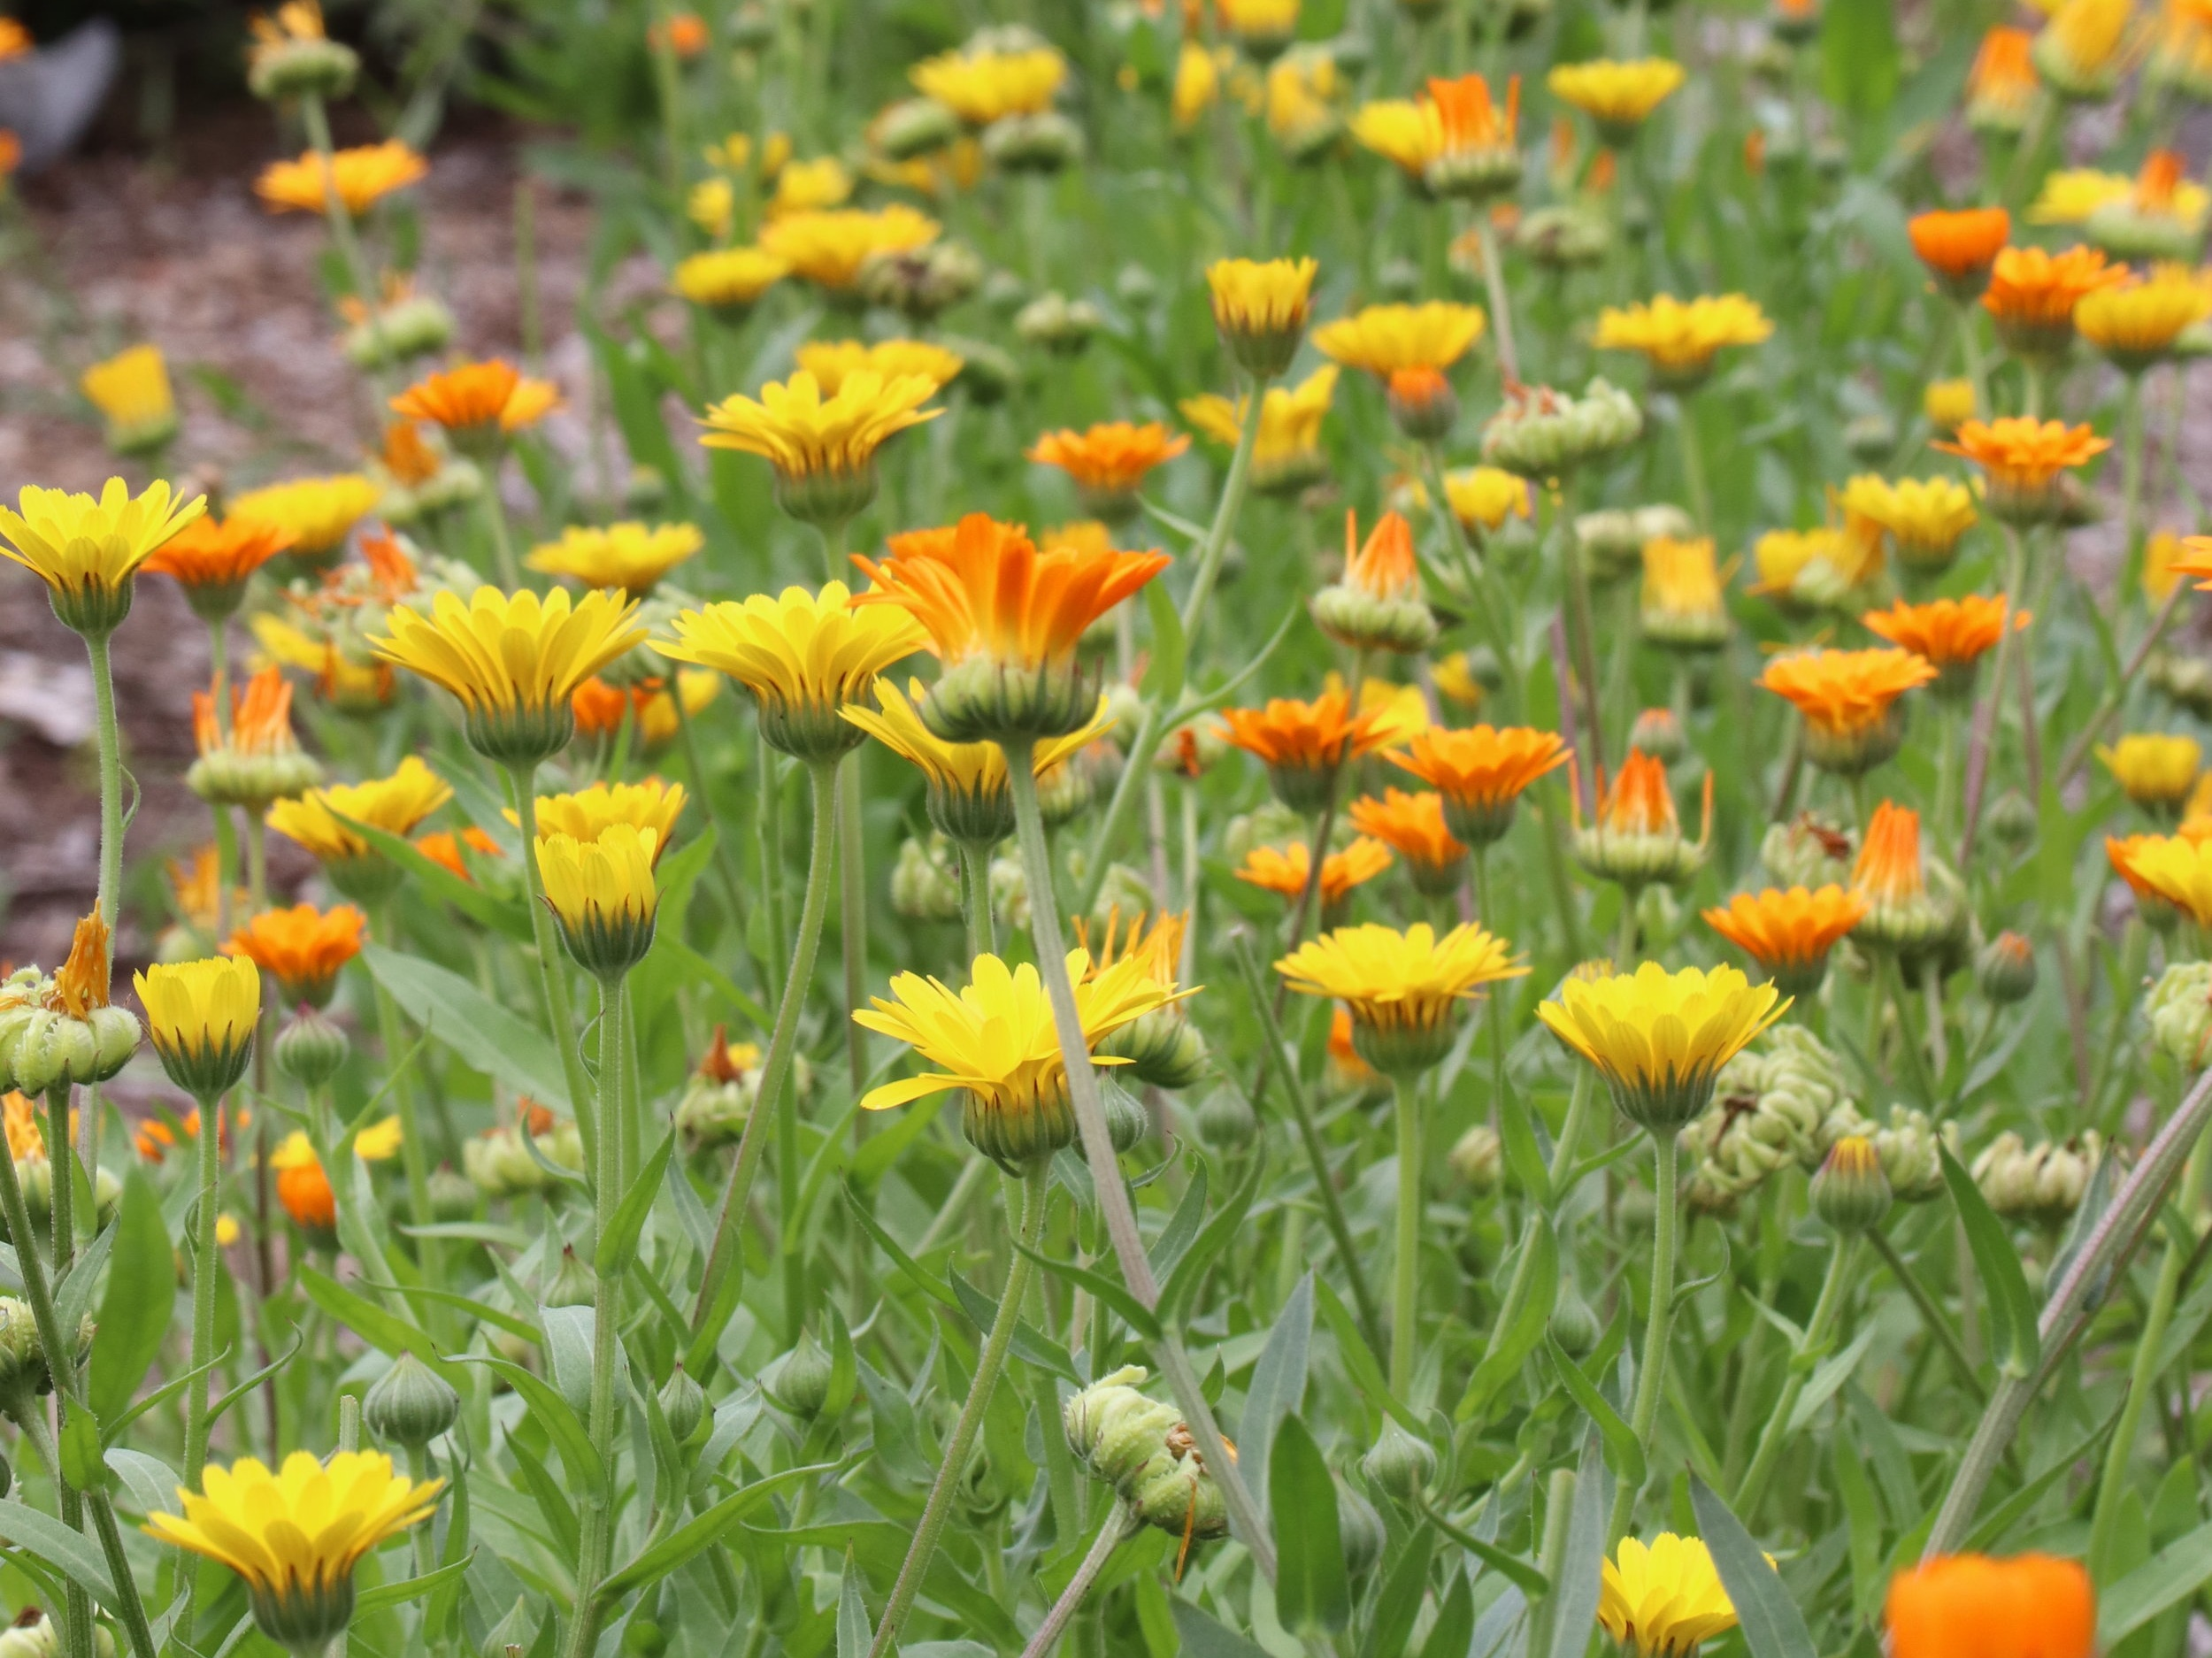 This massing of calendula reseeded the same season, sprouting in the cracks of our driveway. If you don't want to be weeding out calendula, consider giving it a permanent location in your garden as it may behave like a perennial with its prolific self-seeding.